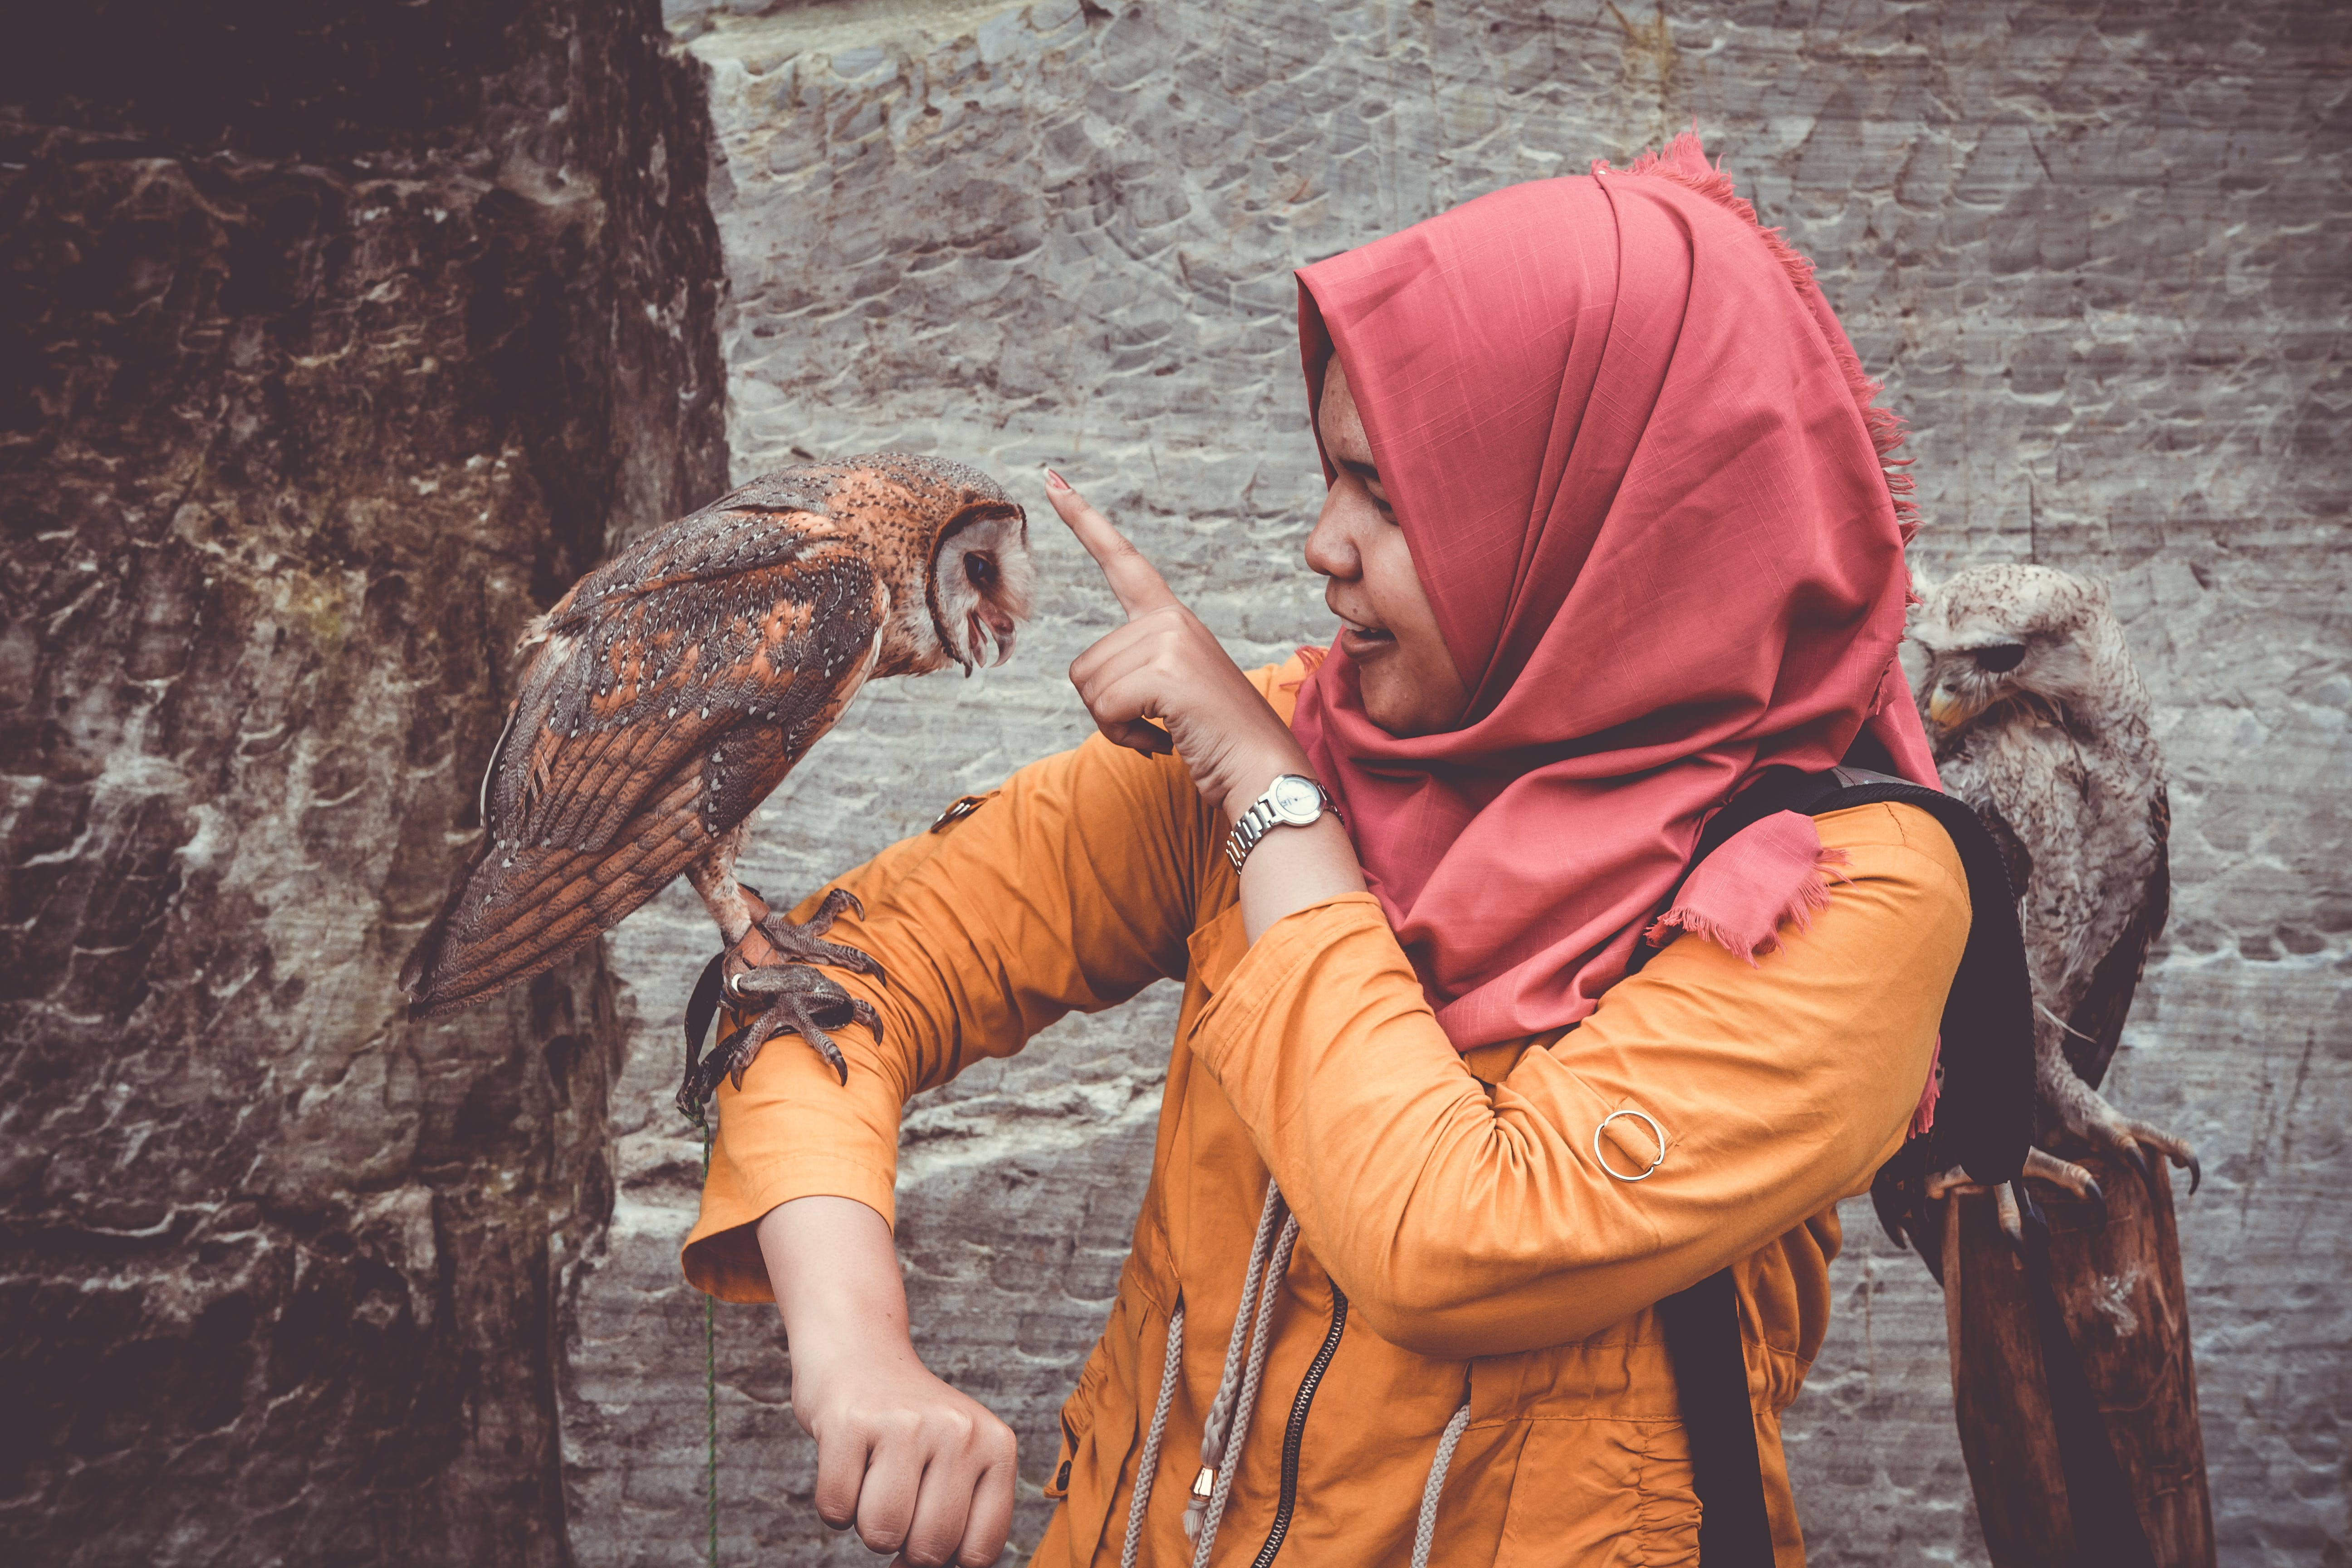 Woman in Red Hijab and Orange Coat Touching Brown and White Owl